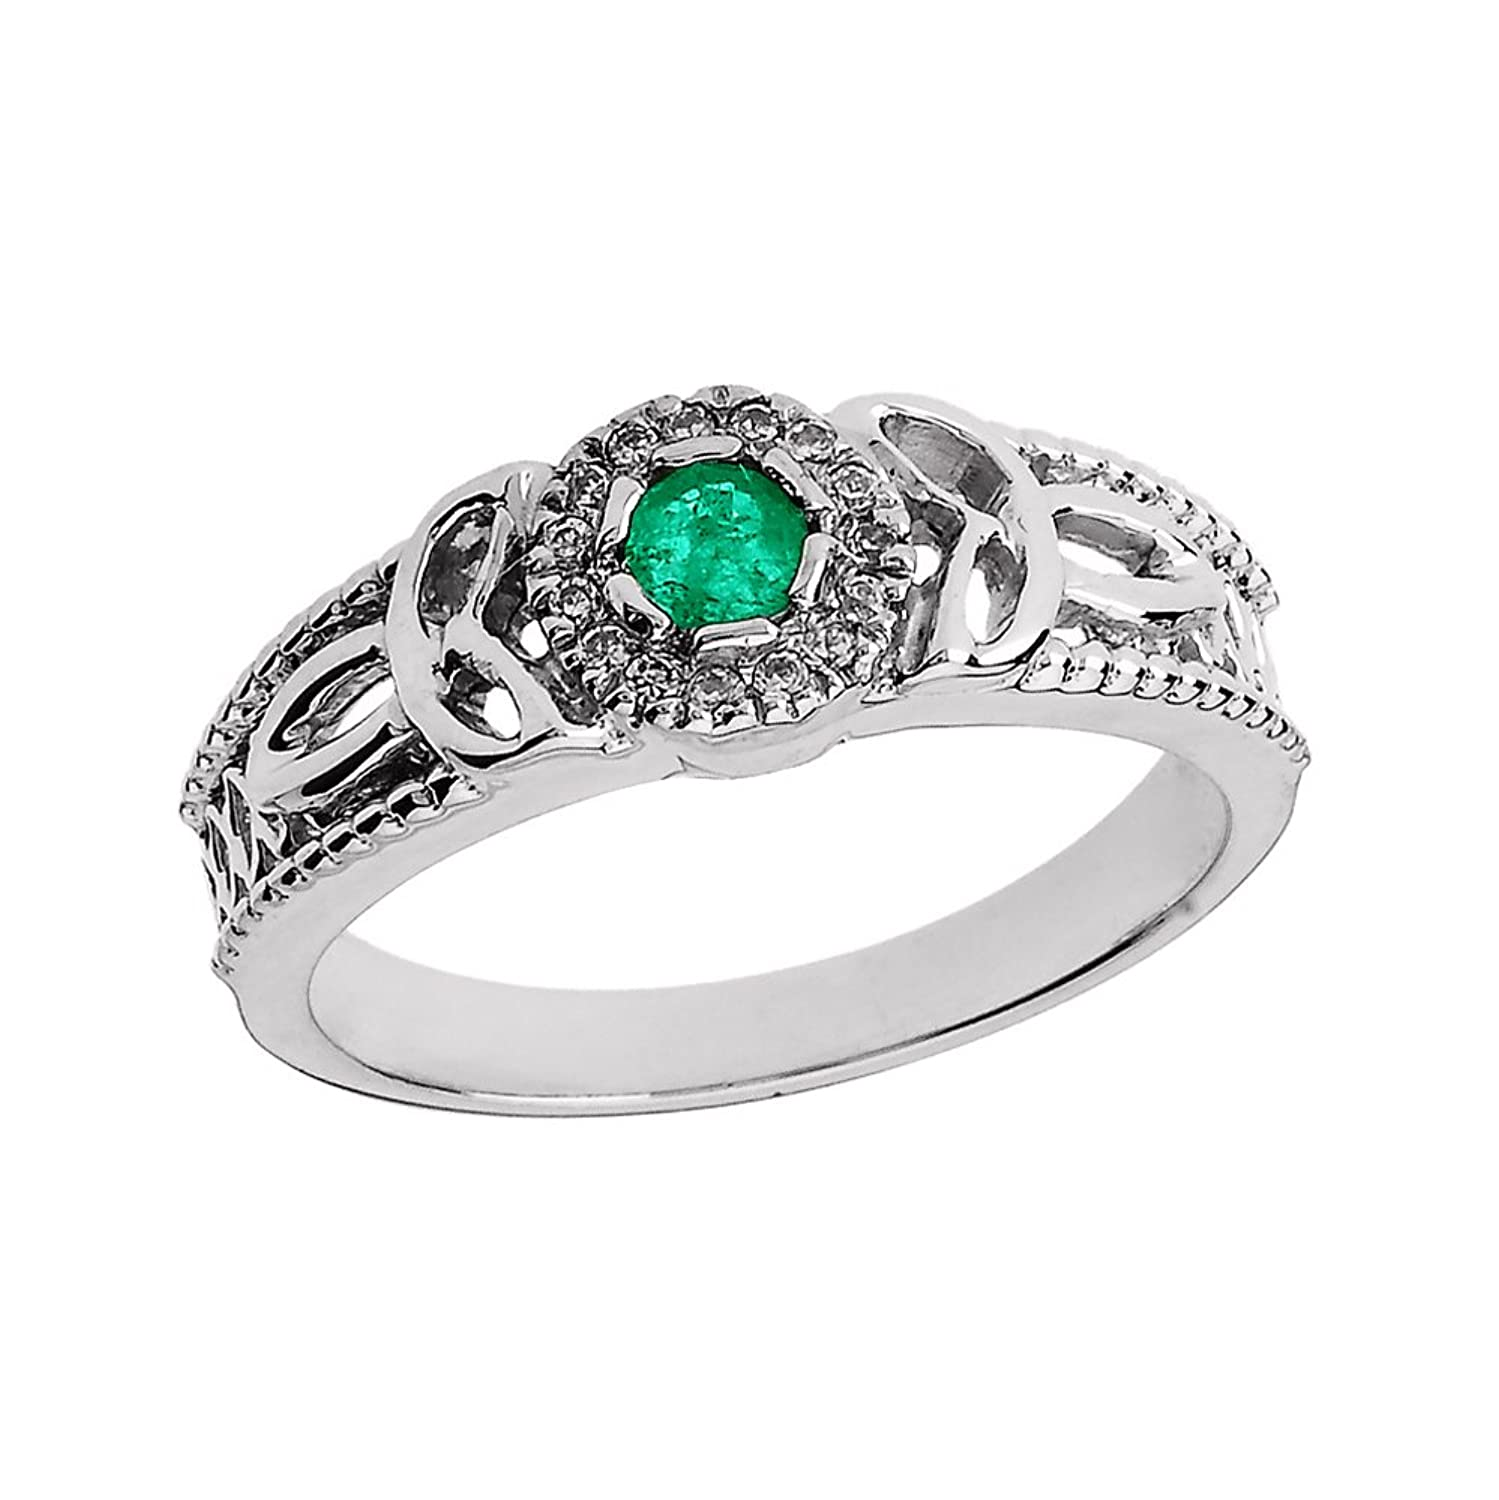 10k White Gold Emerald and Diamond Ladies Trinity Knot Proposal Ring